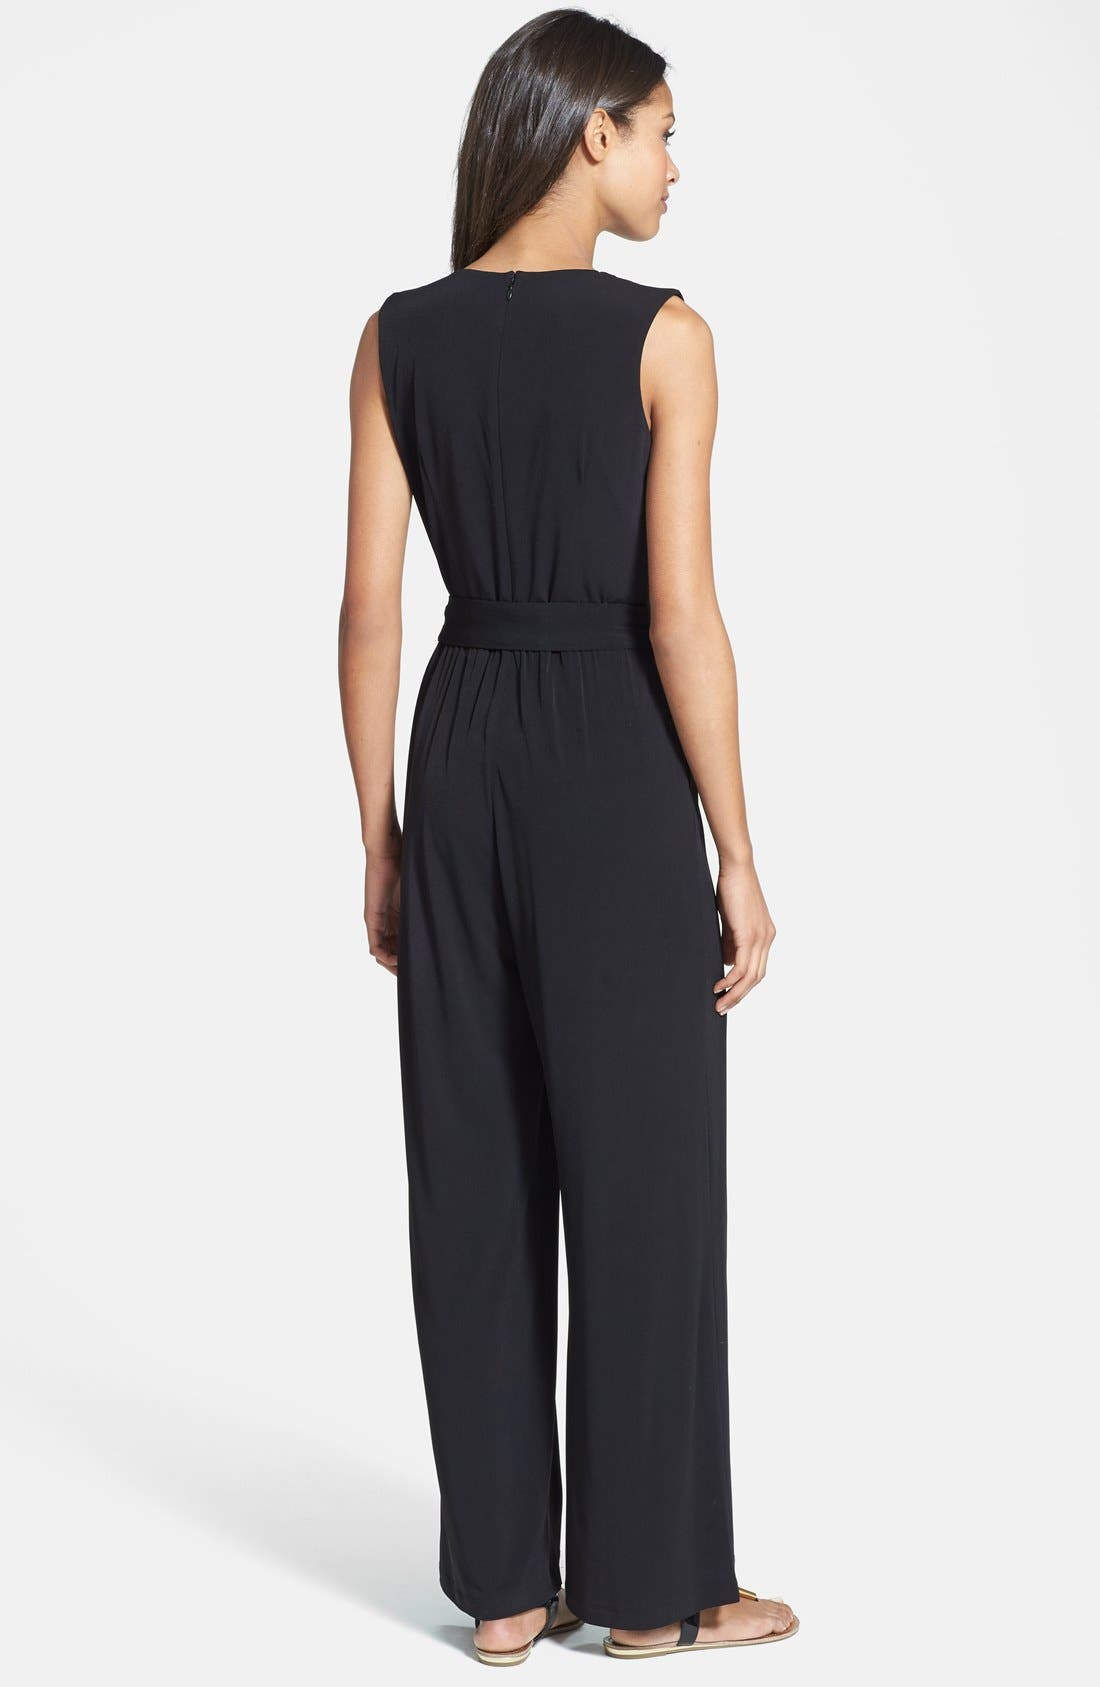 VINCE CAMUTO, Faux Wrap Jersey Jumpsuit, Alternate thumbnail 8, color, BLACK